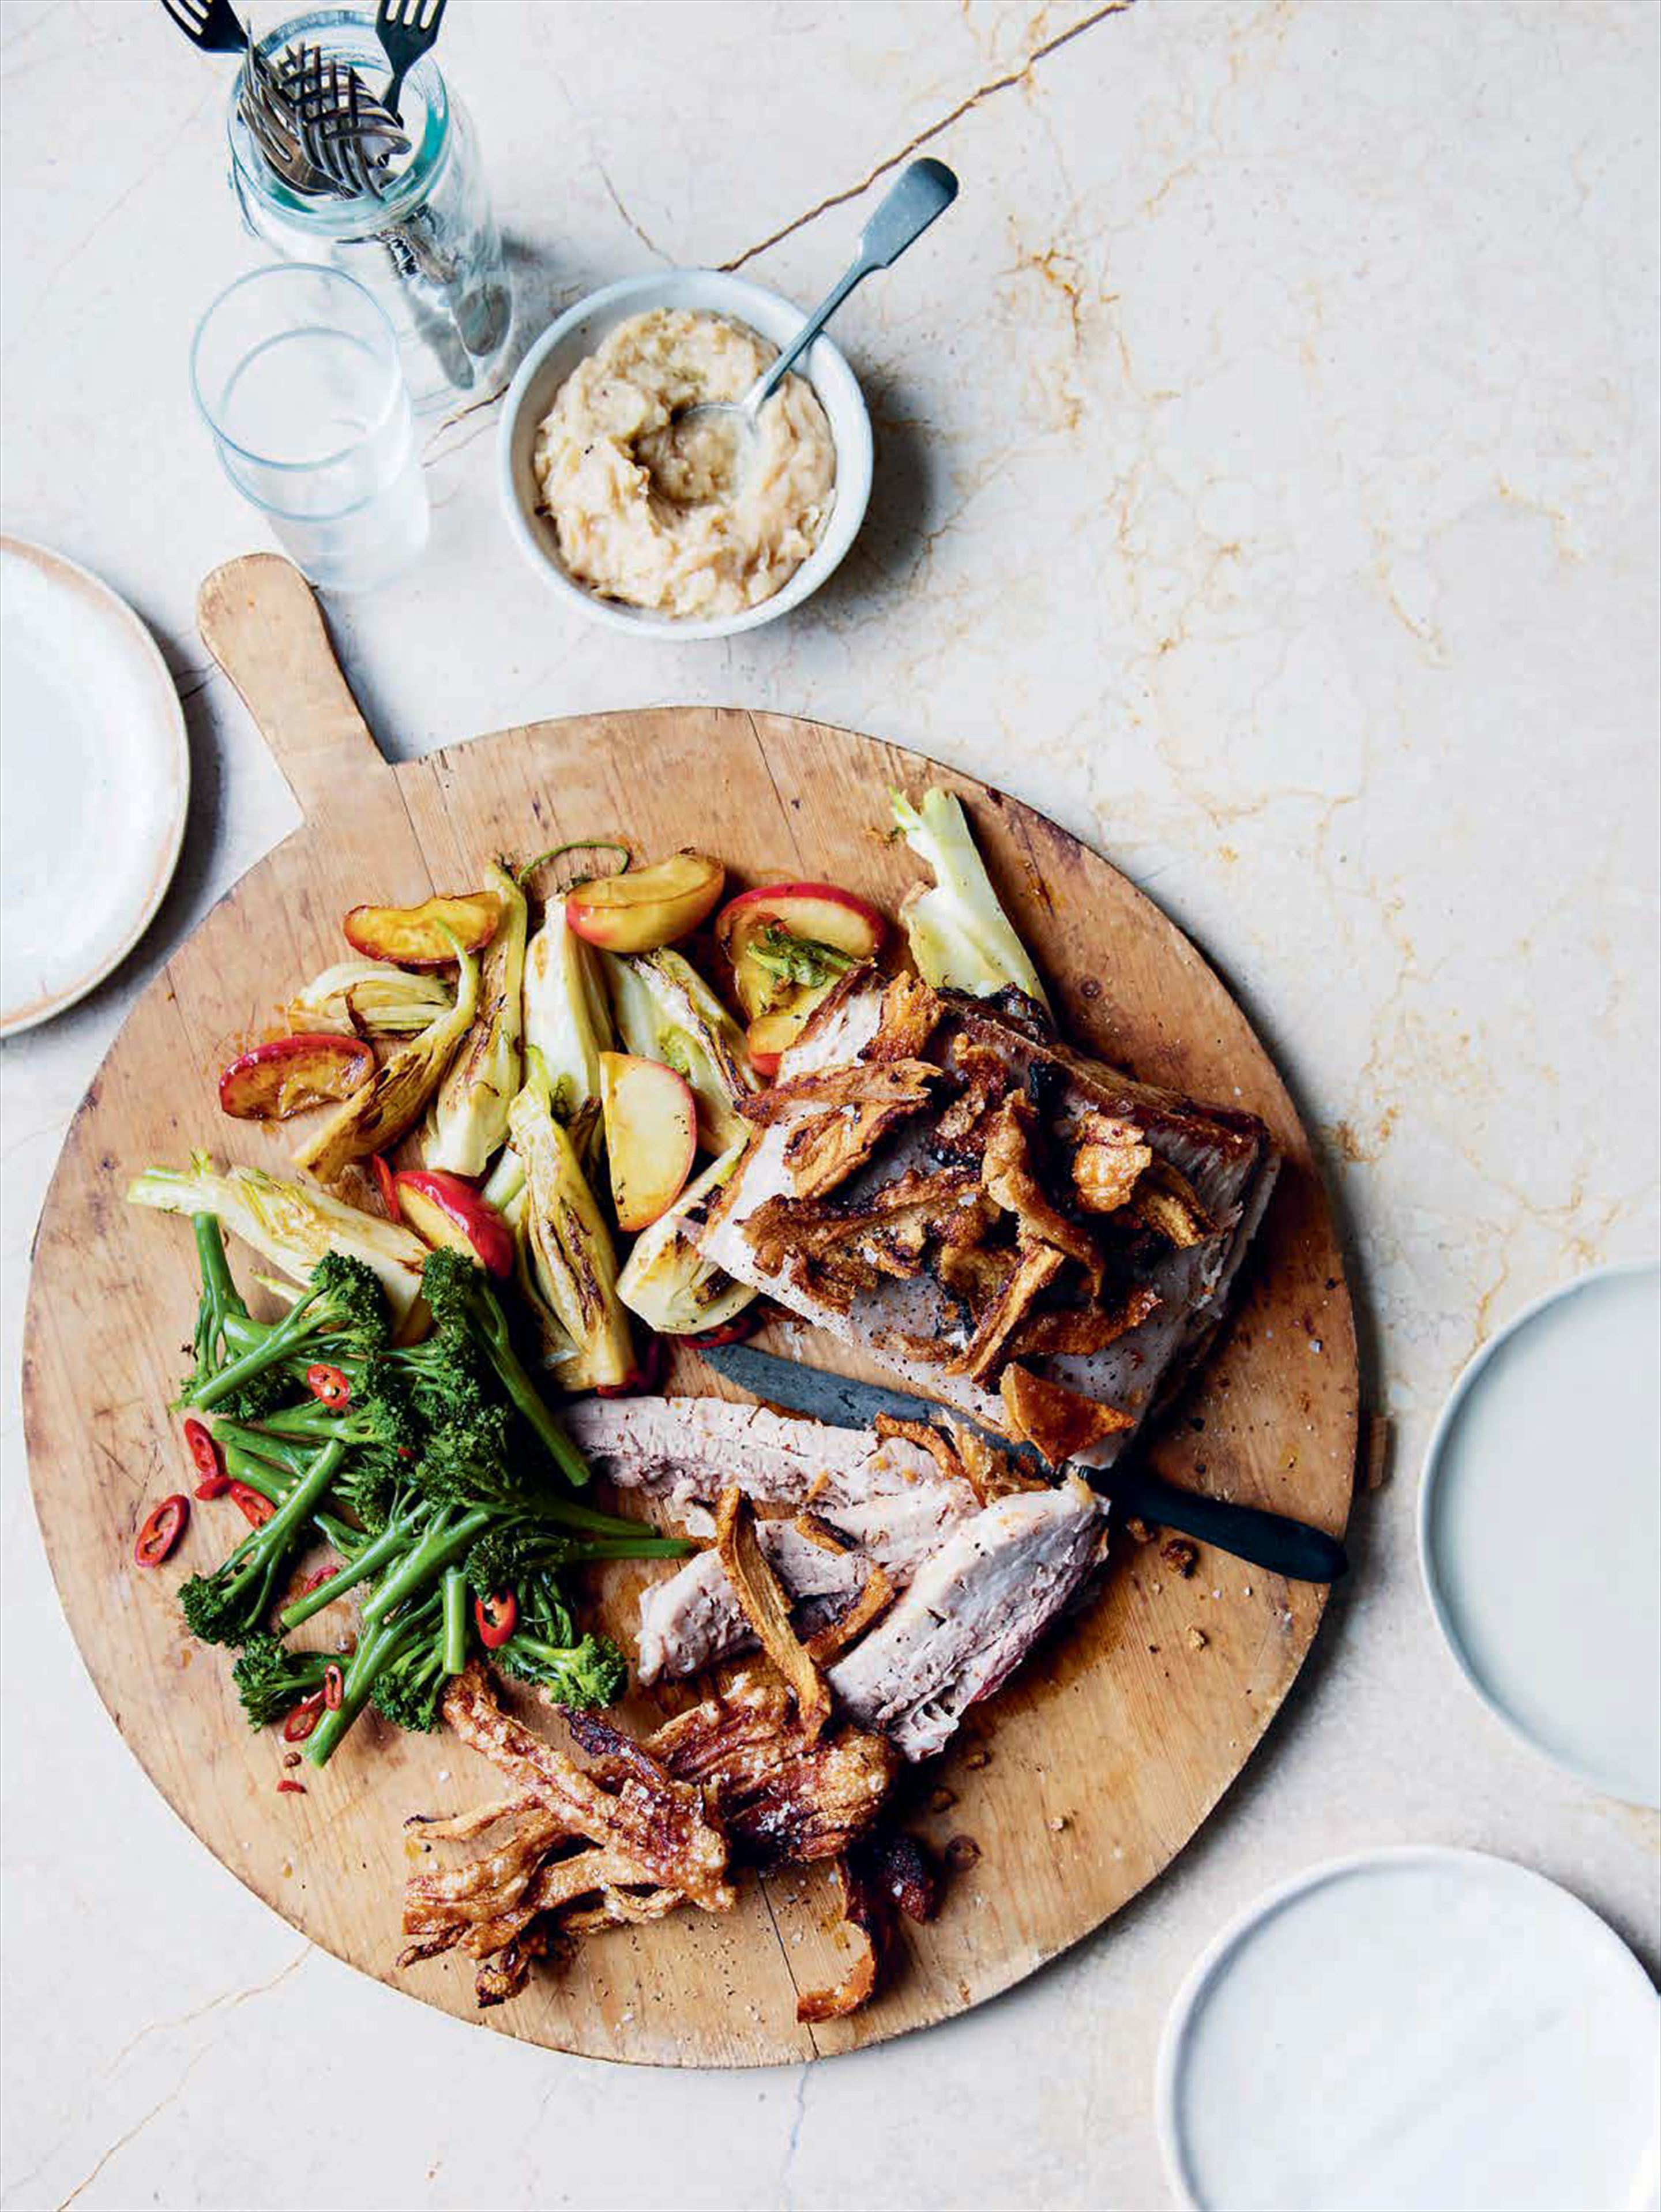 Roast pork with apple and fennel puree